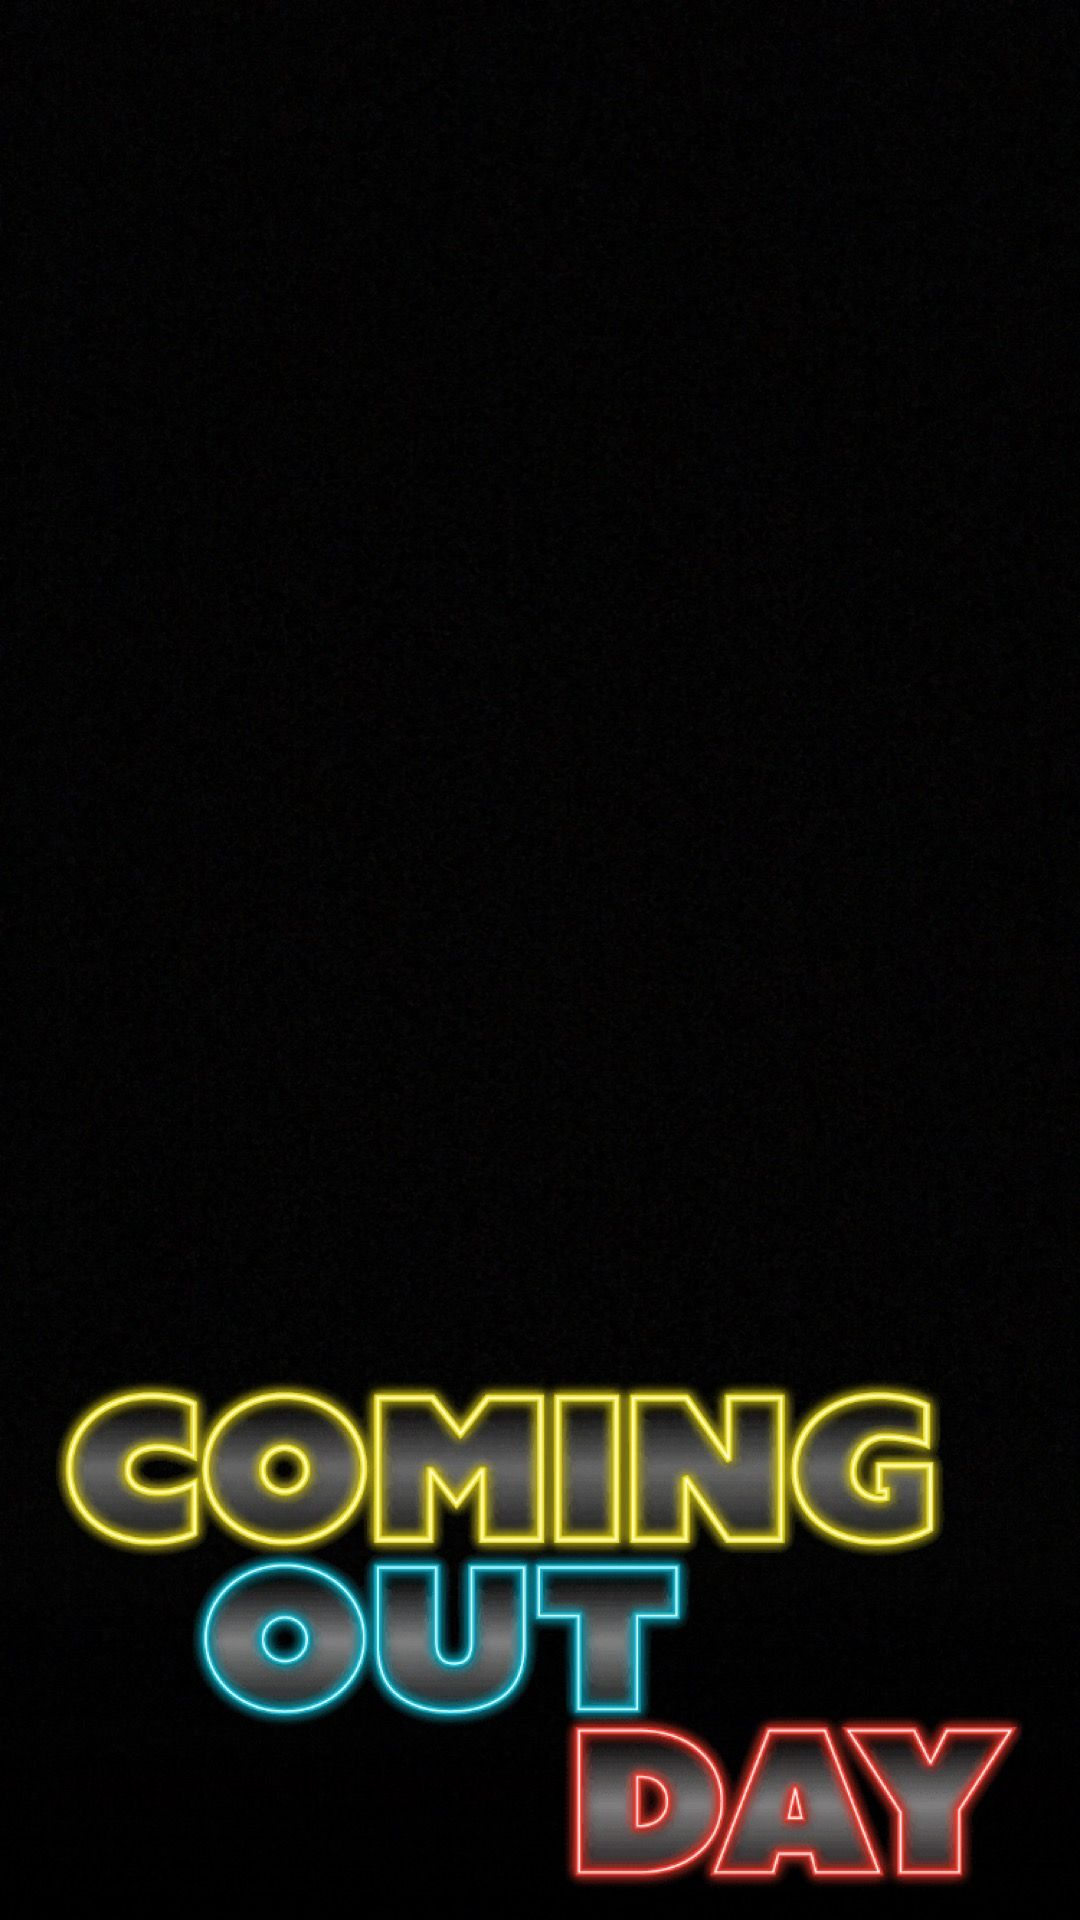 Coming Out Day Snapchat geofilter Social media